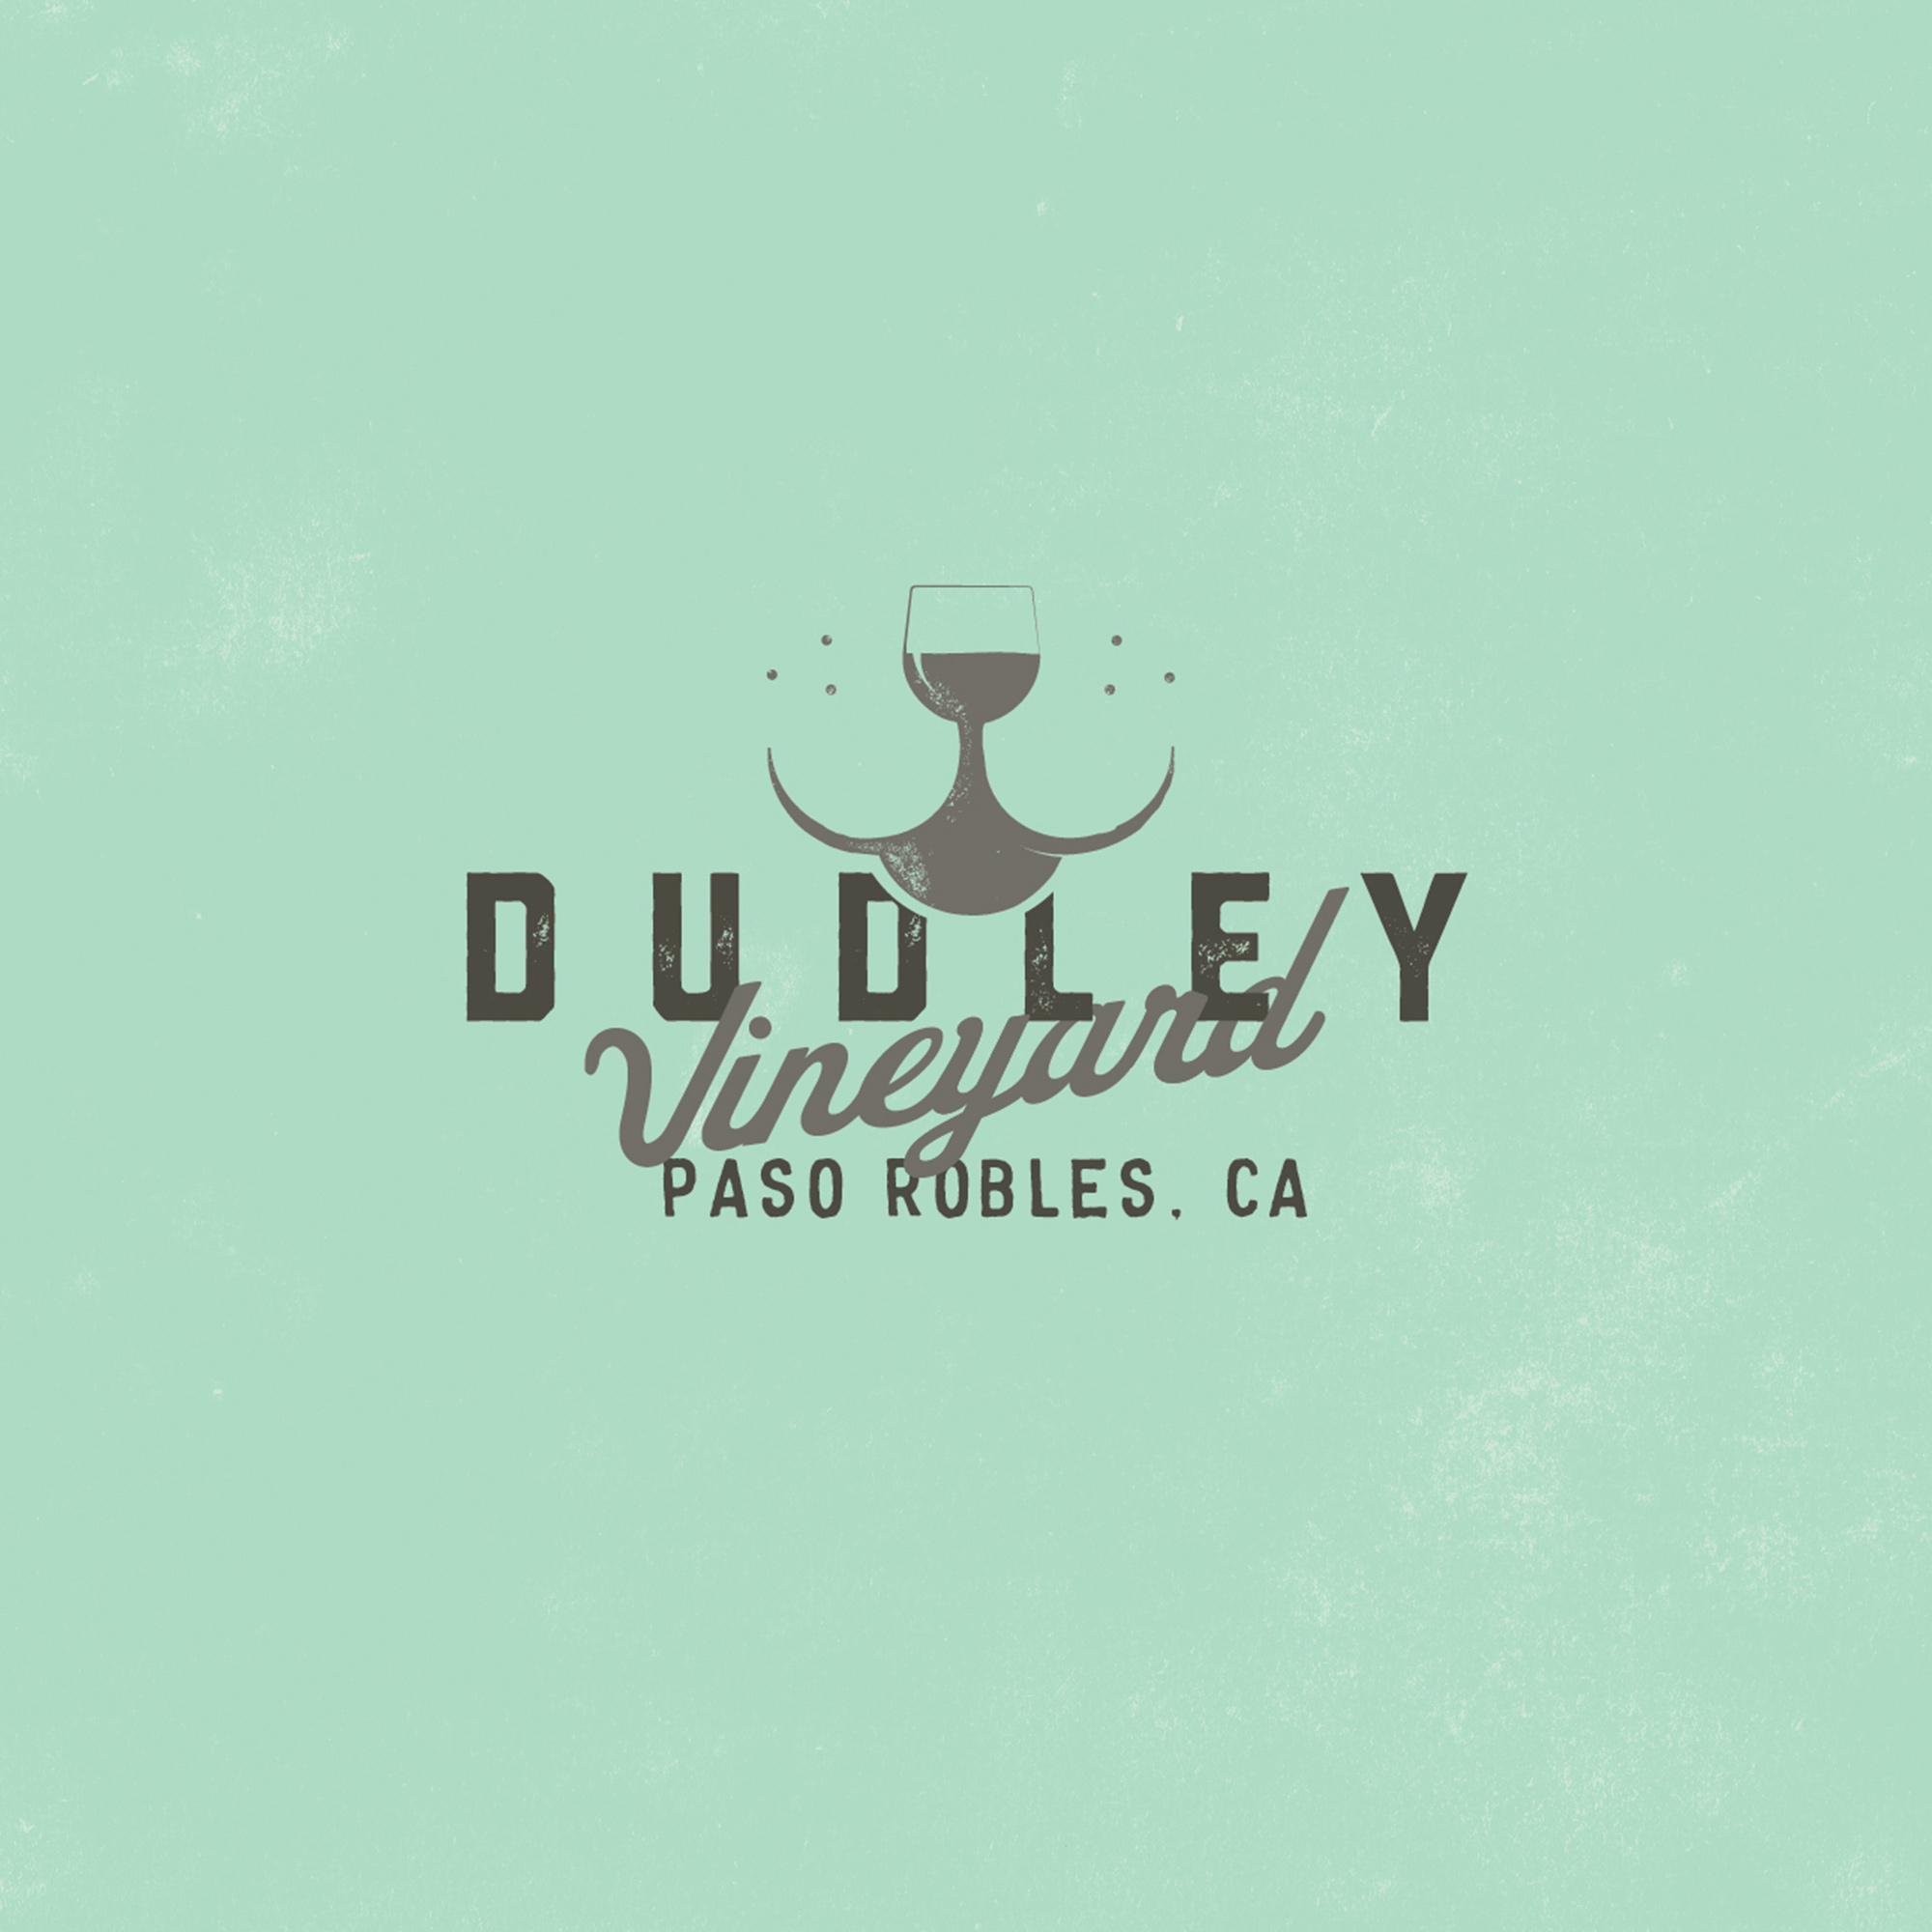 Dudley Vineyards